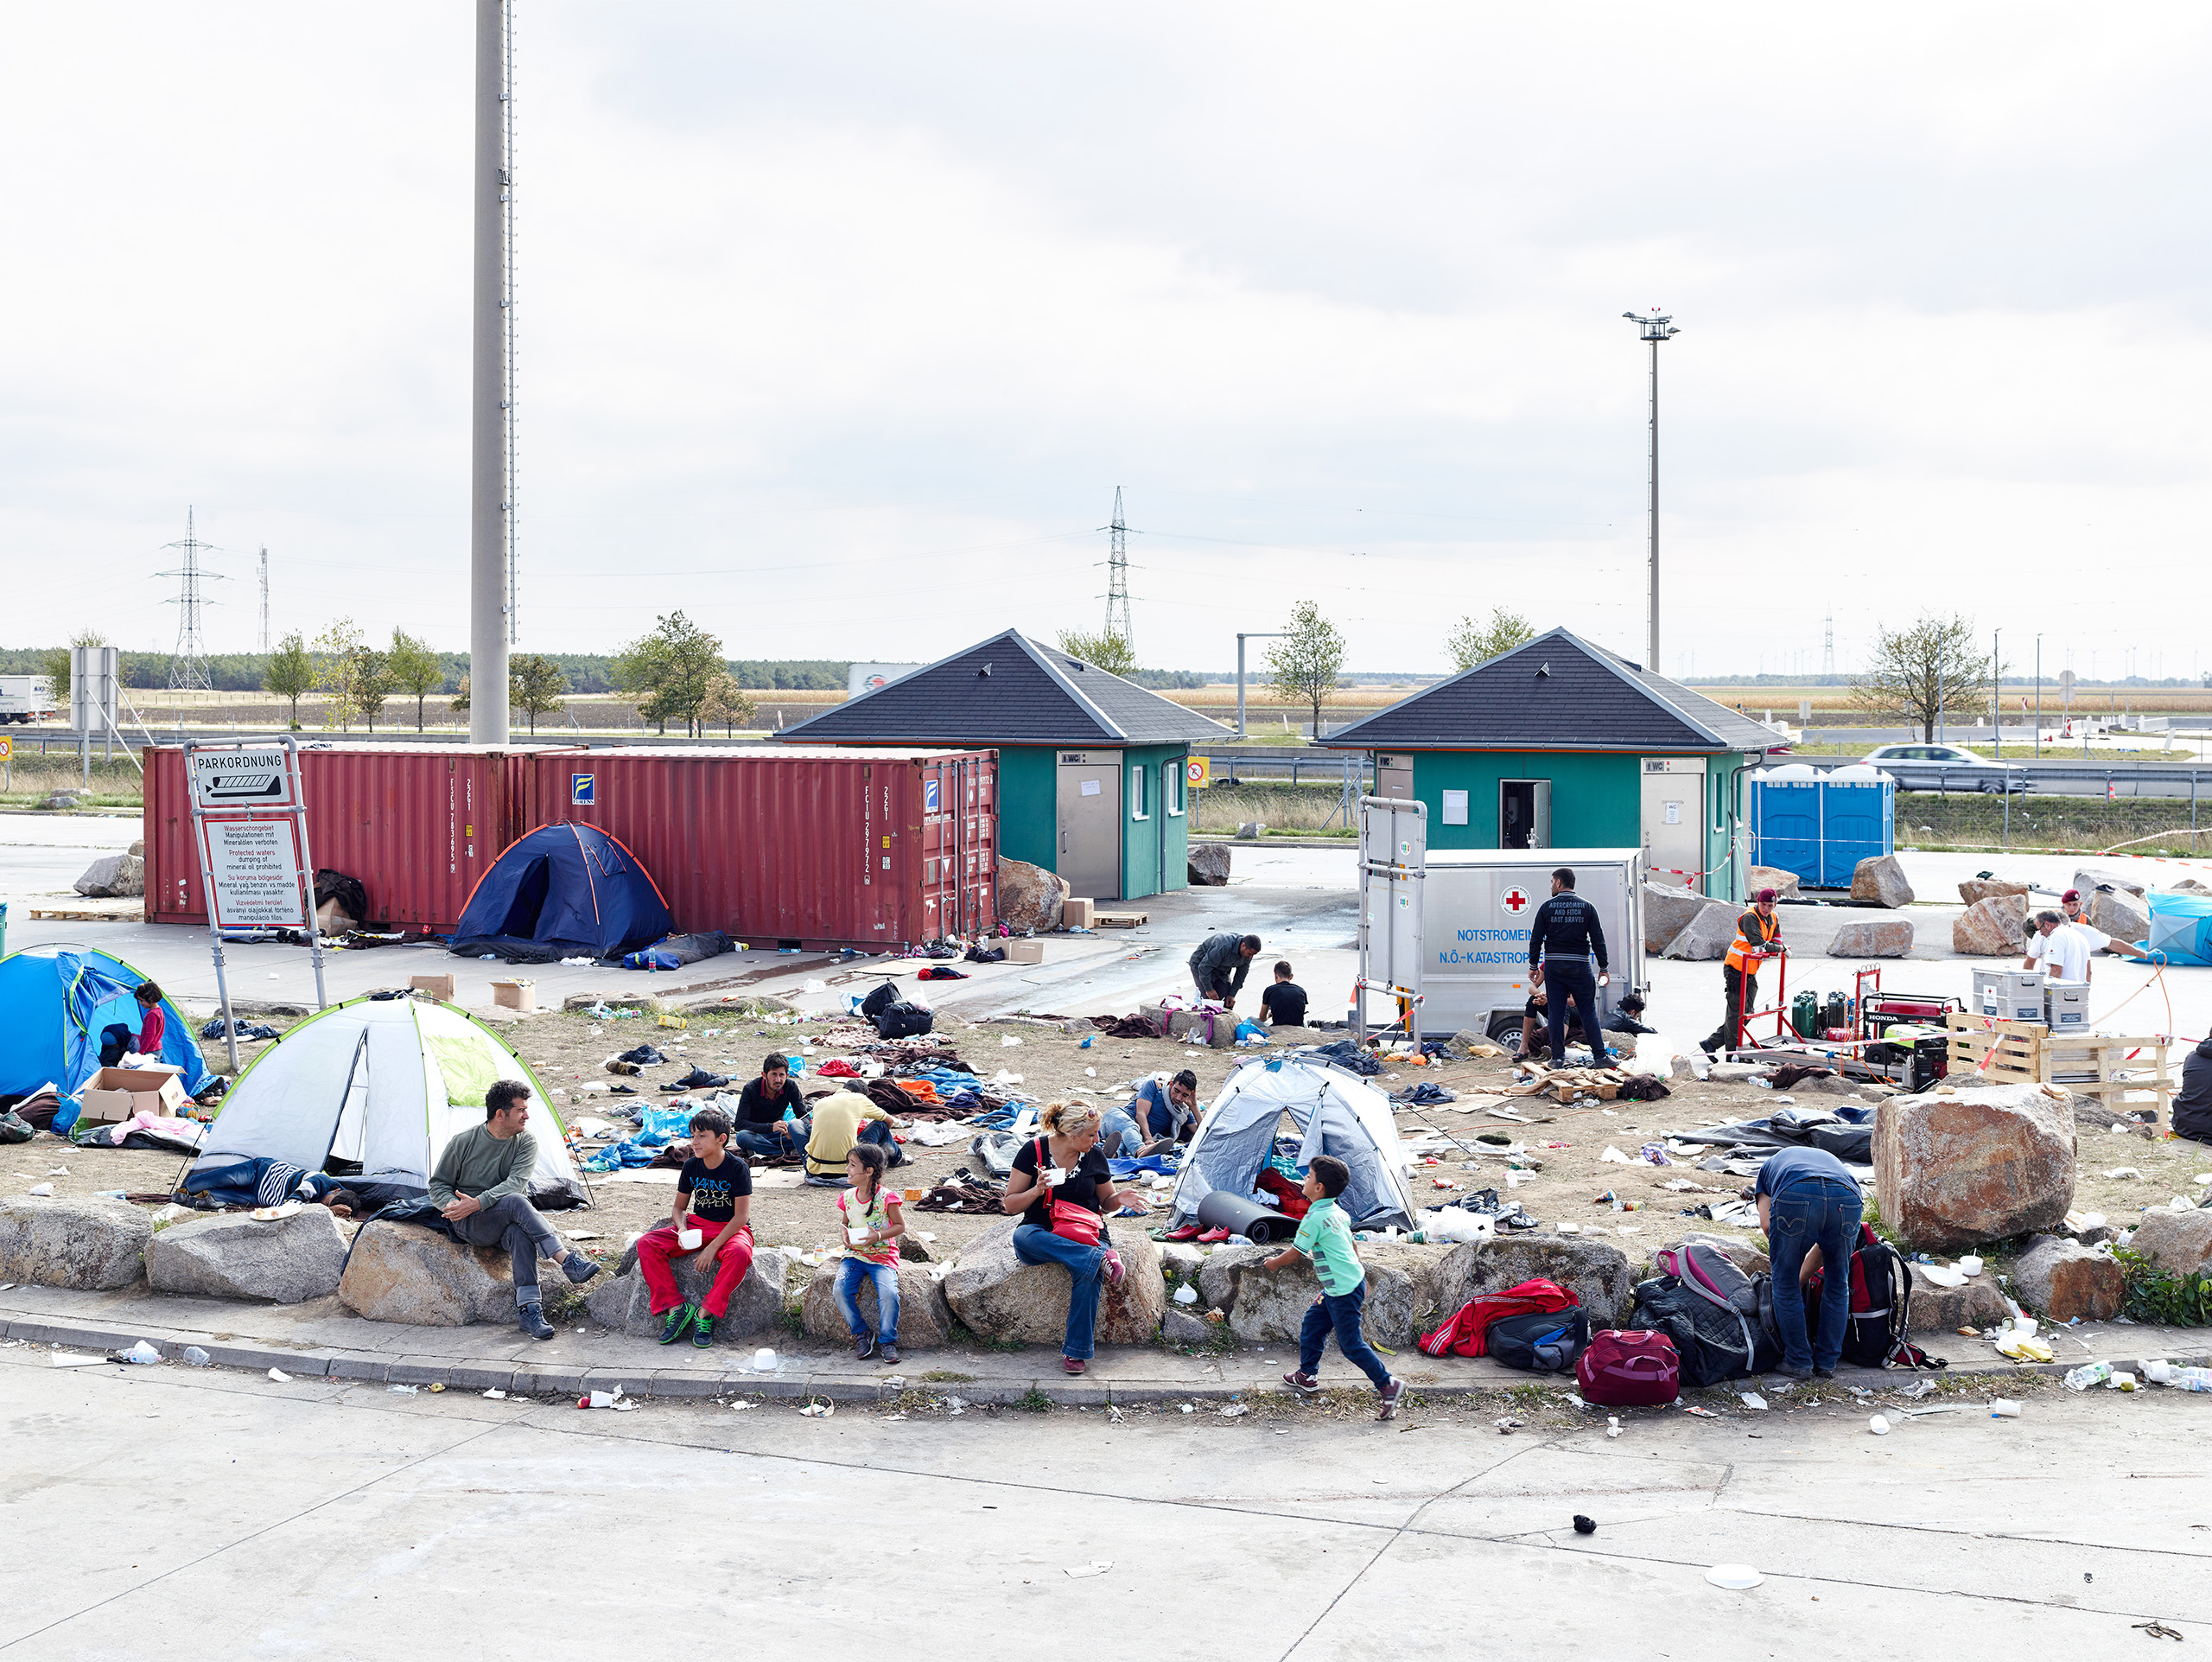 Refugees wait in Nickelsdorf, Austria, on the Hungarian border, a major entry point for migrants from the Middle East.